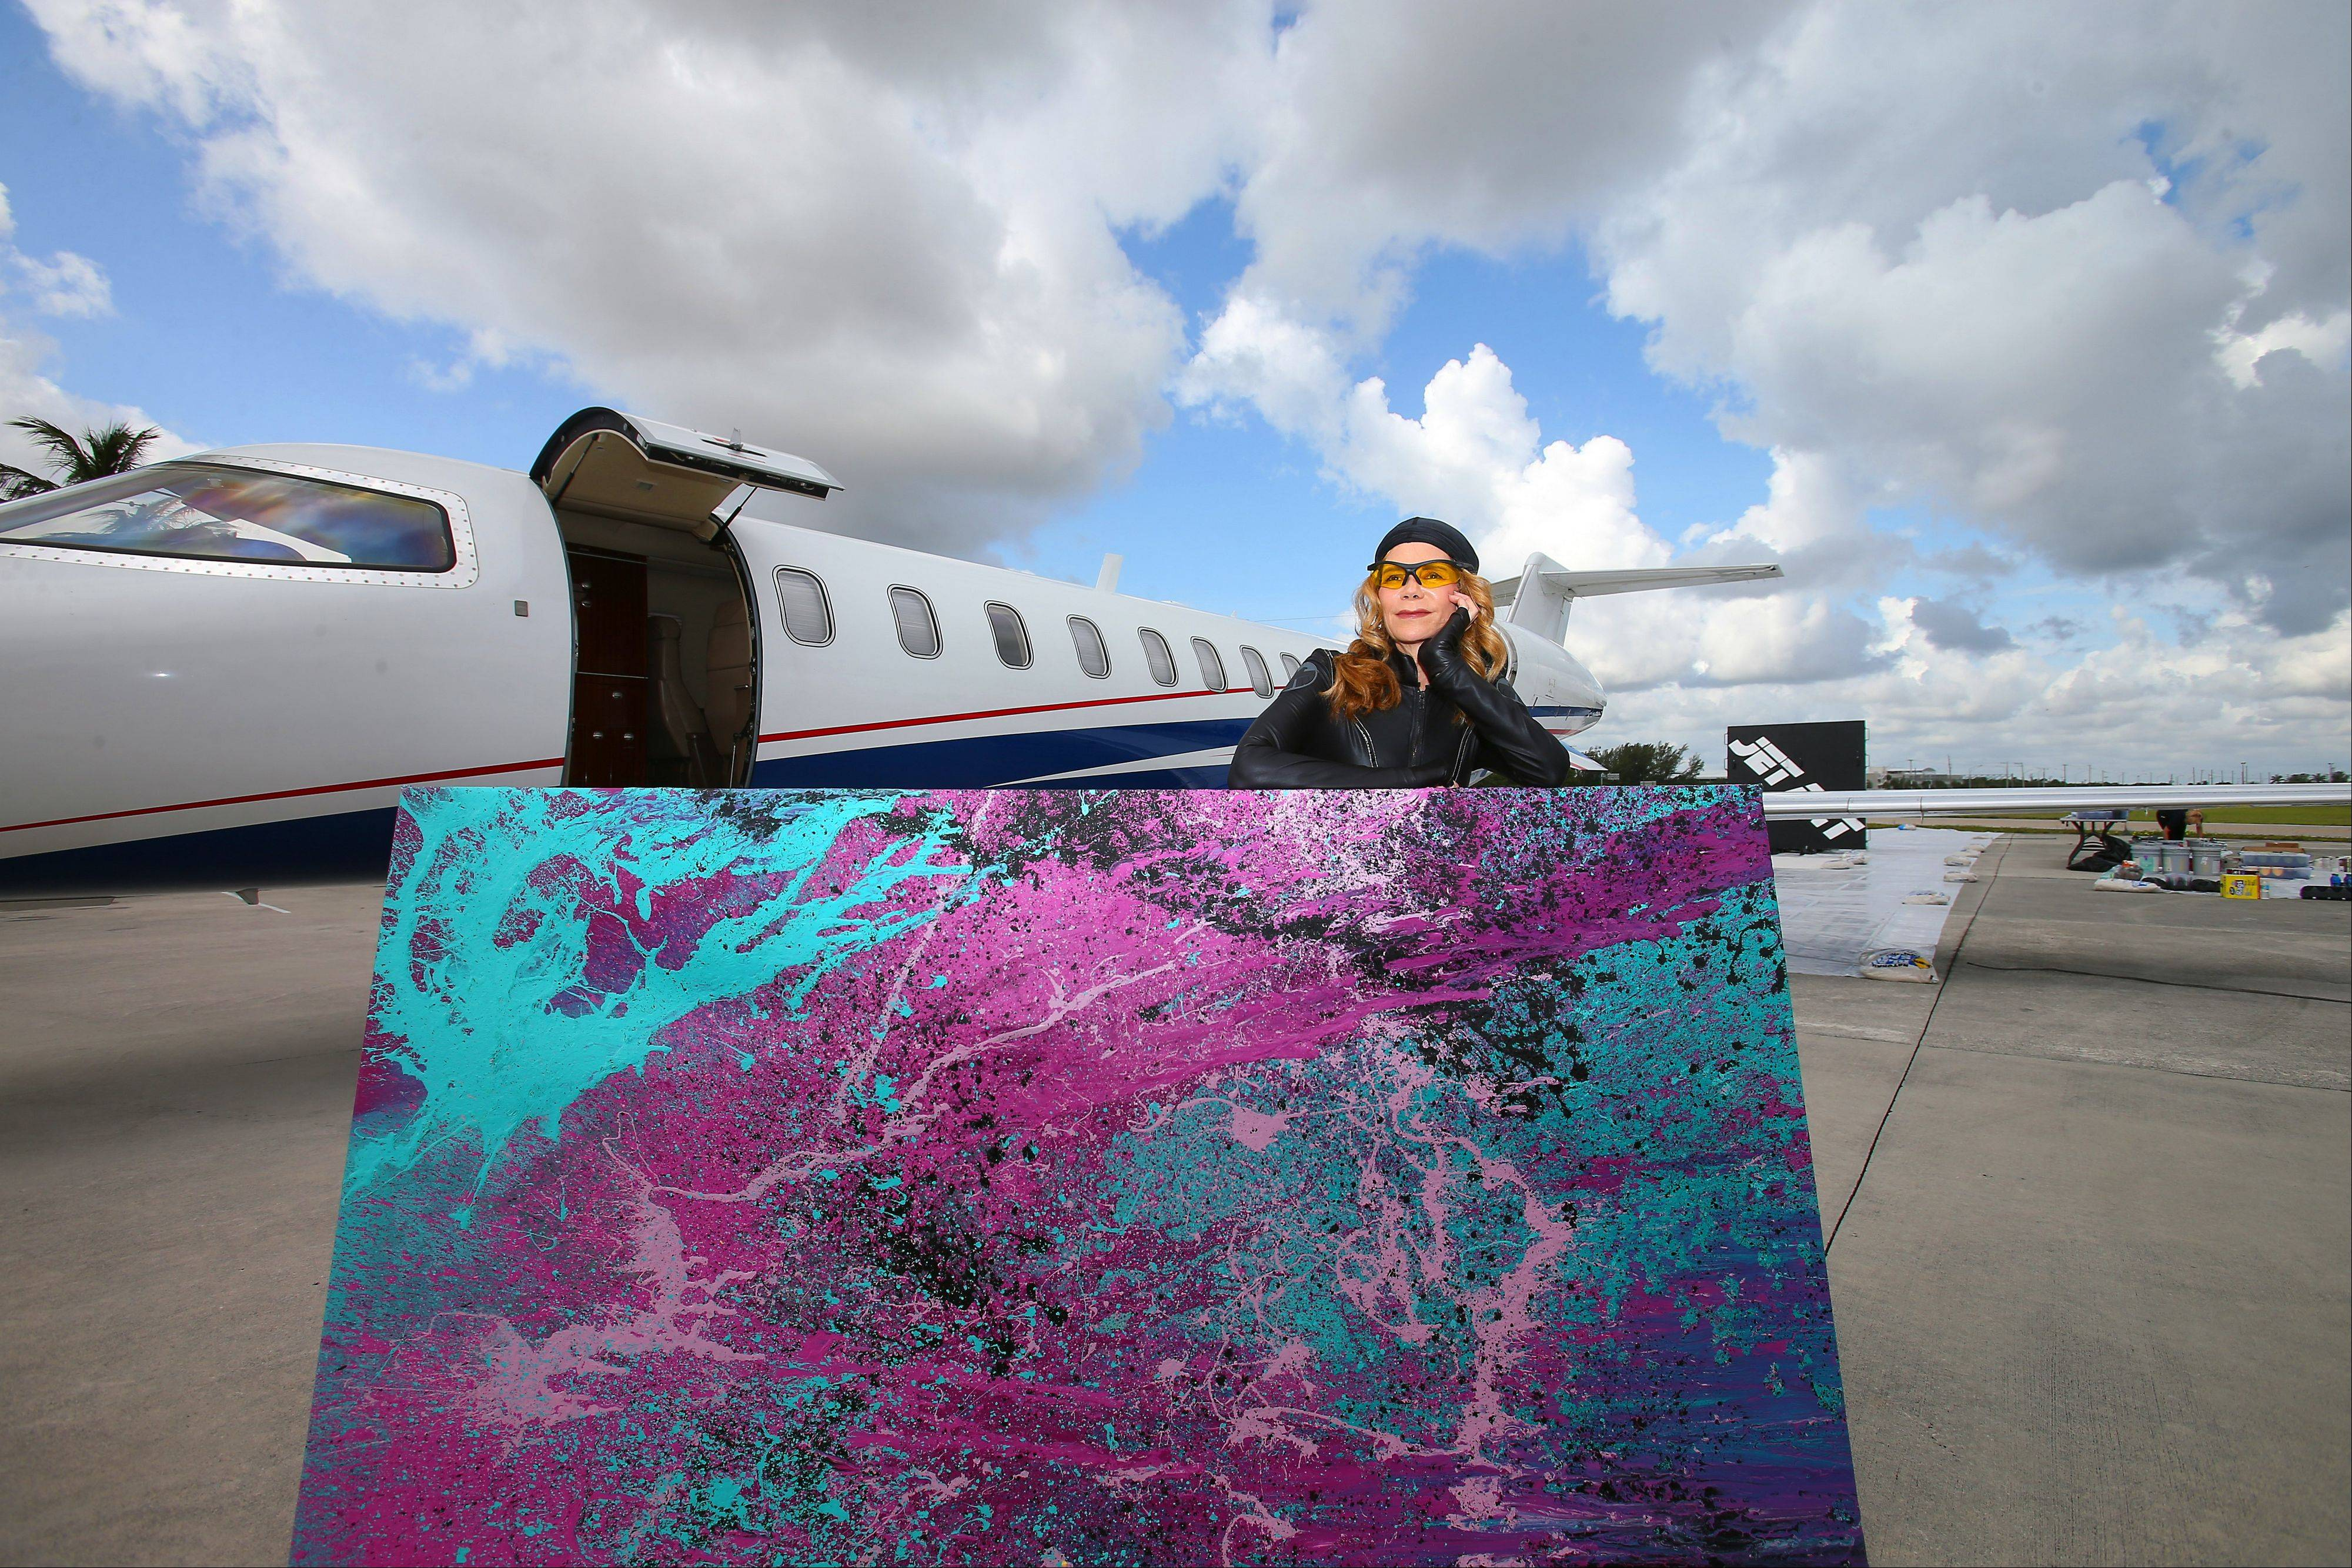 Artist Princess Tarinan von Anhalt shows off one of her splatter creations made with the help of a jet engine.